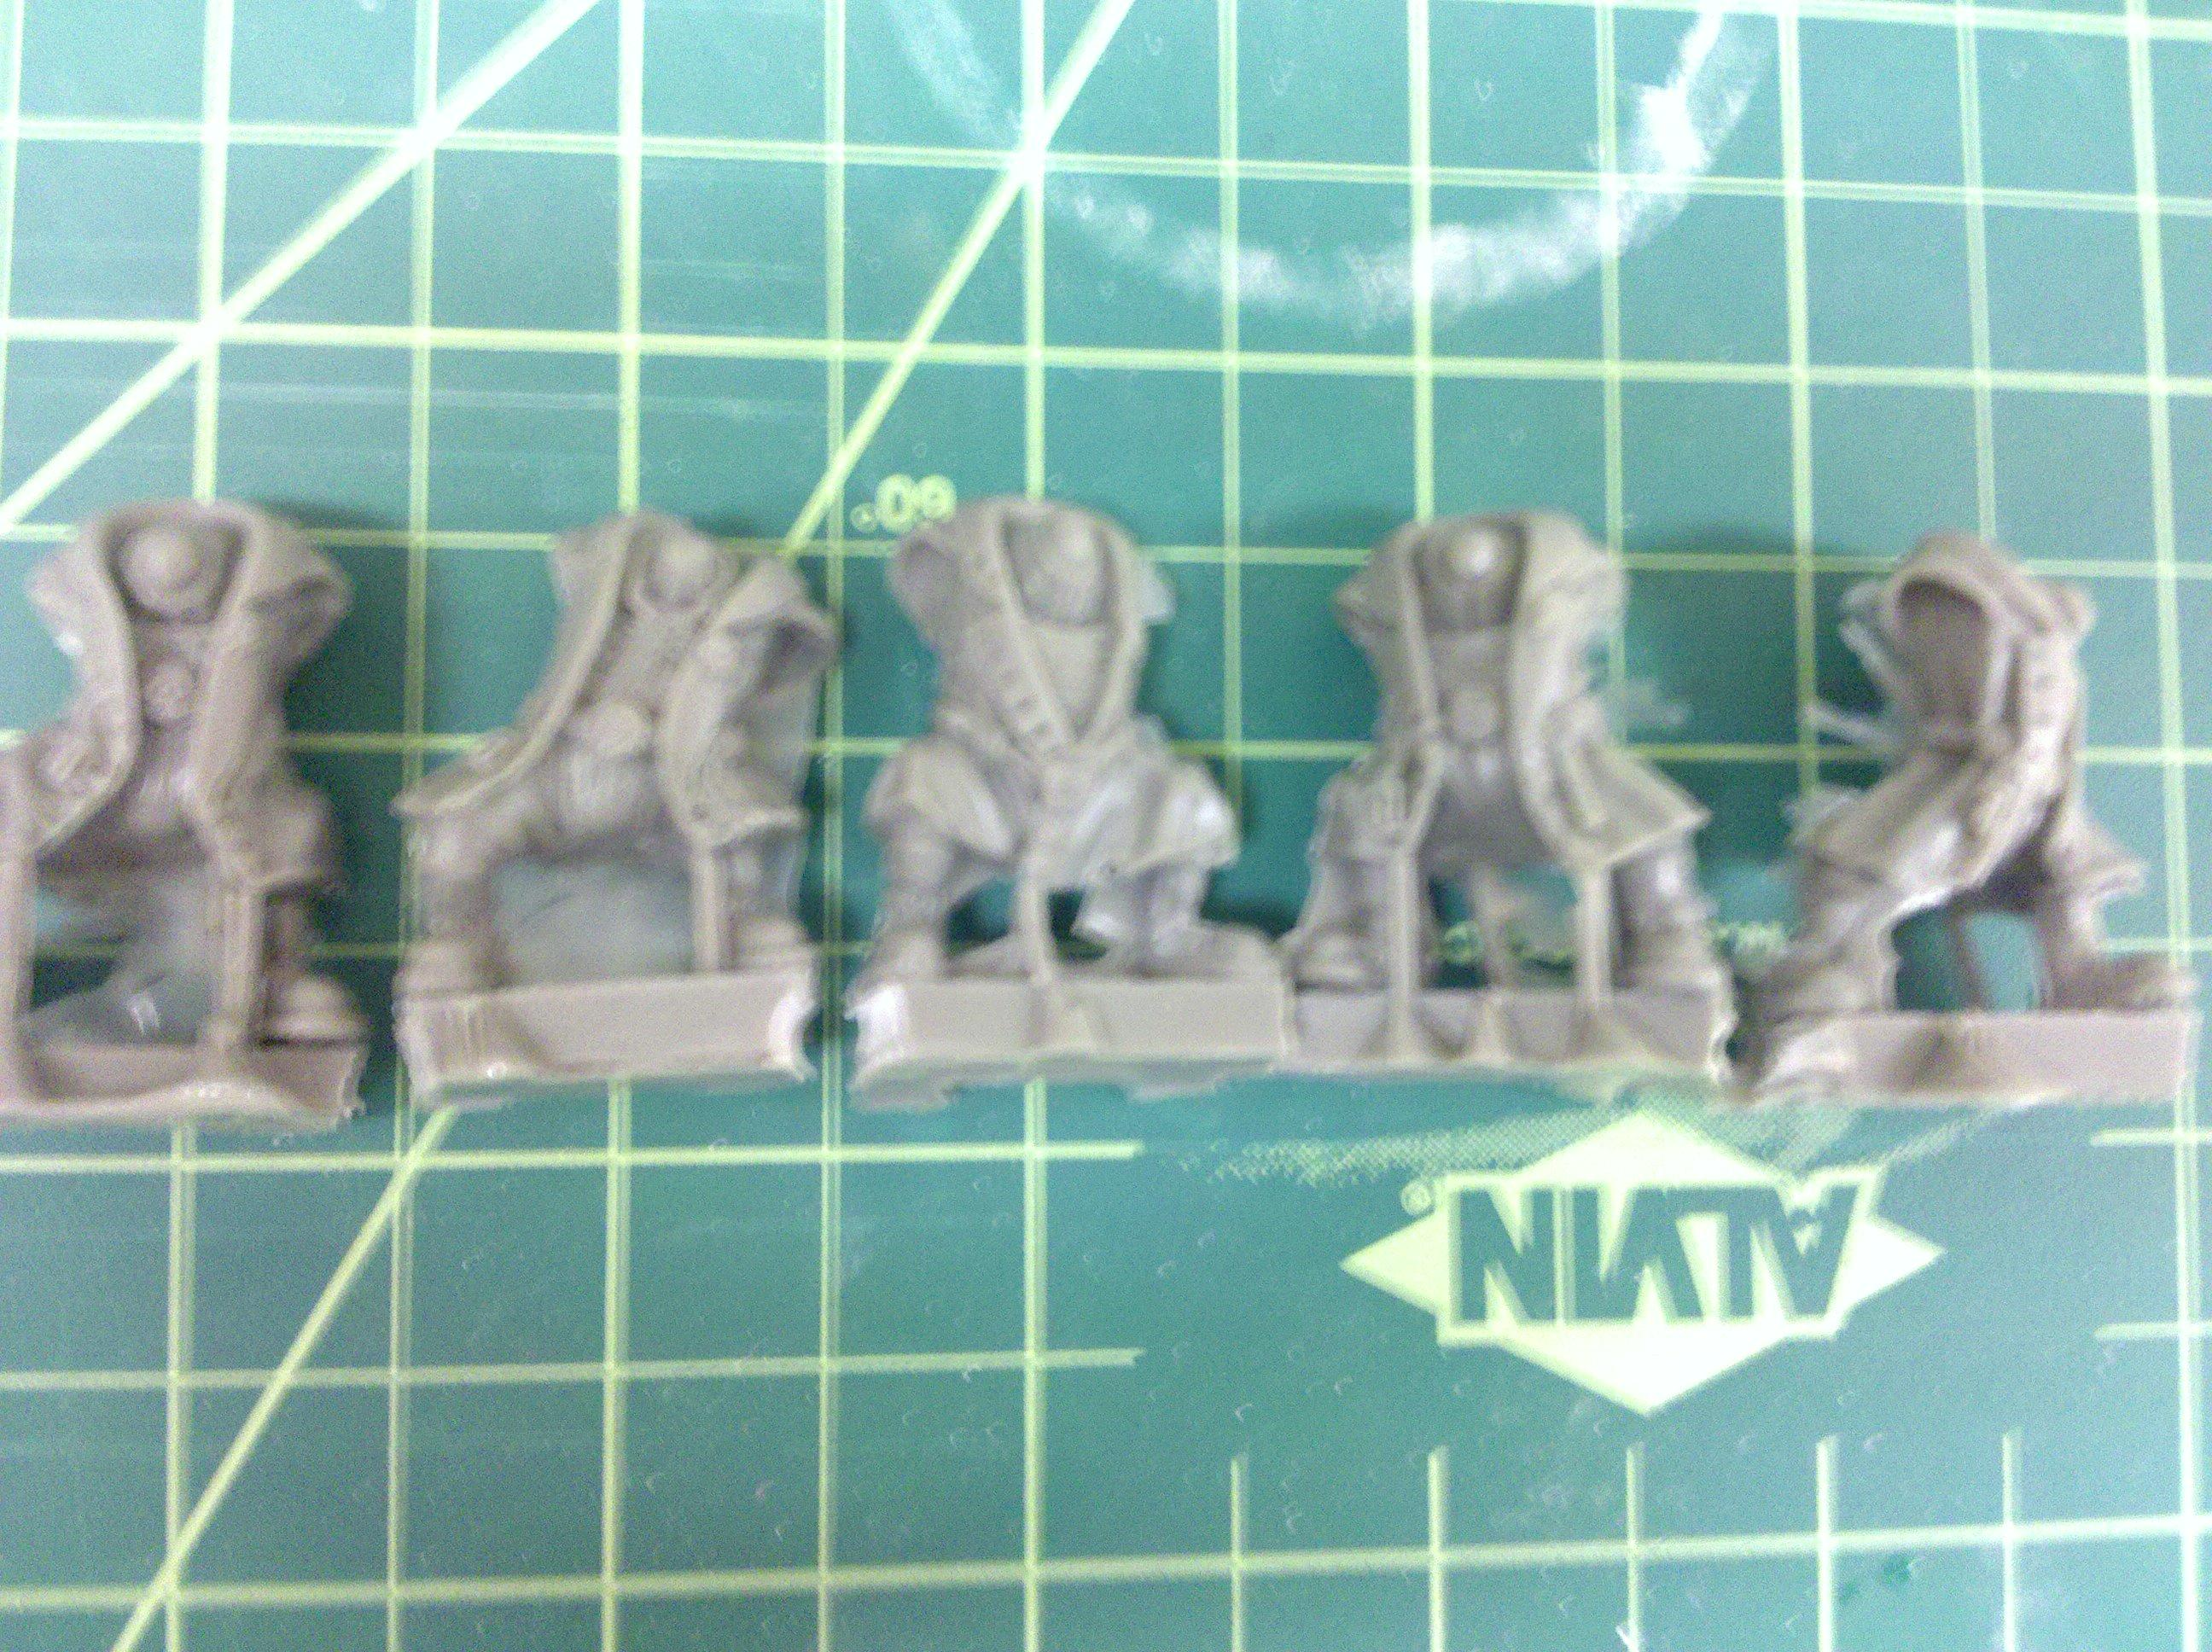 3rd Pack: Ork bodys with heavy armor in trenchcoats from micro art studios